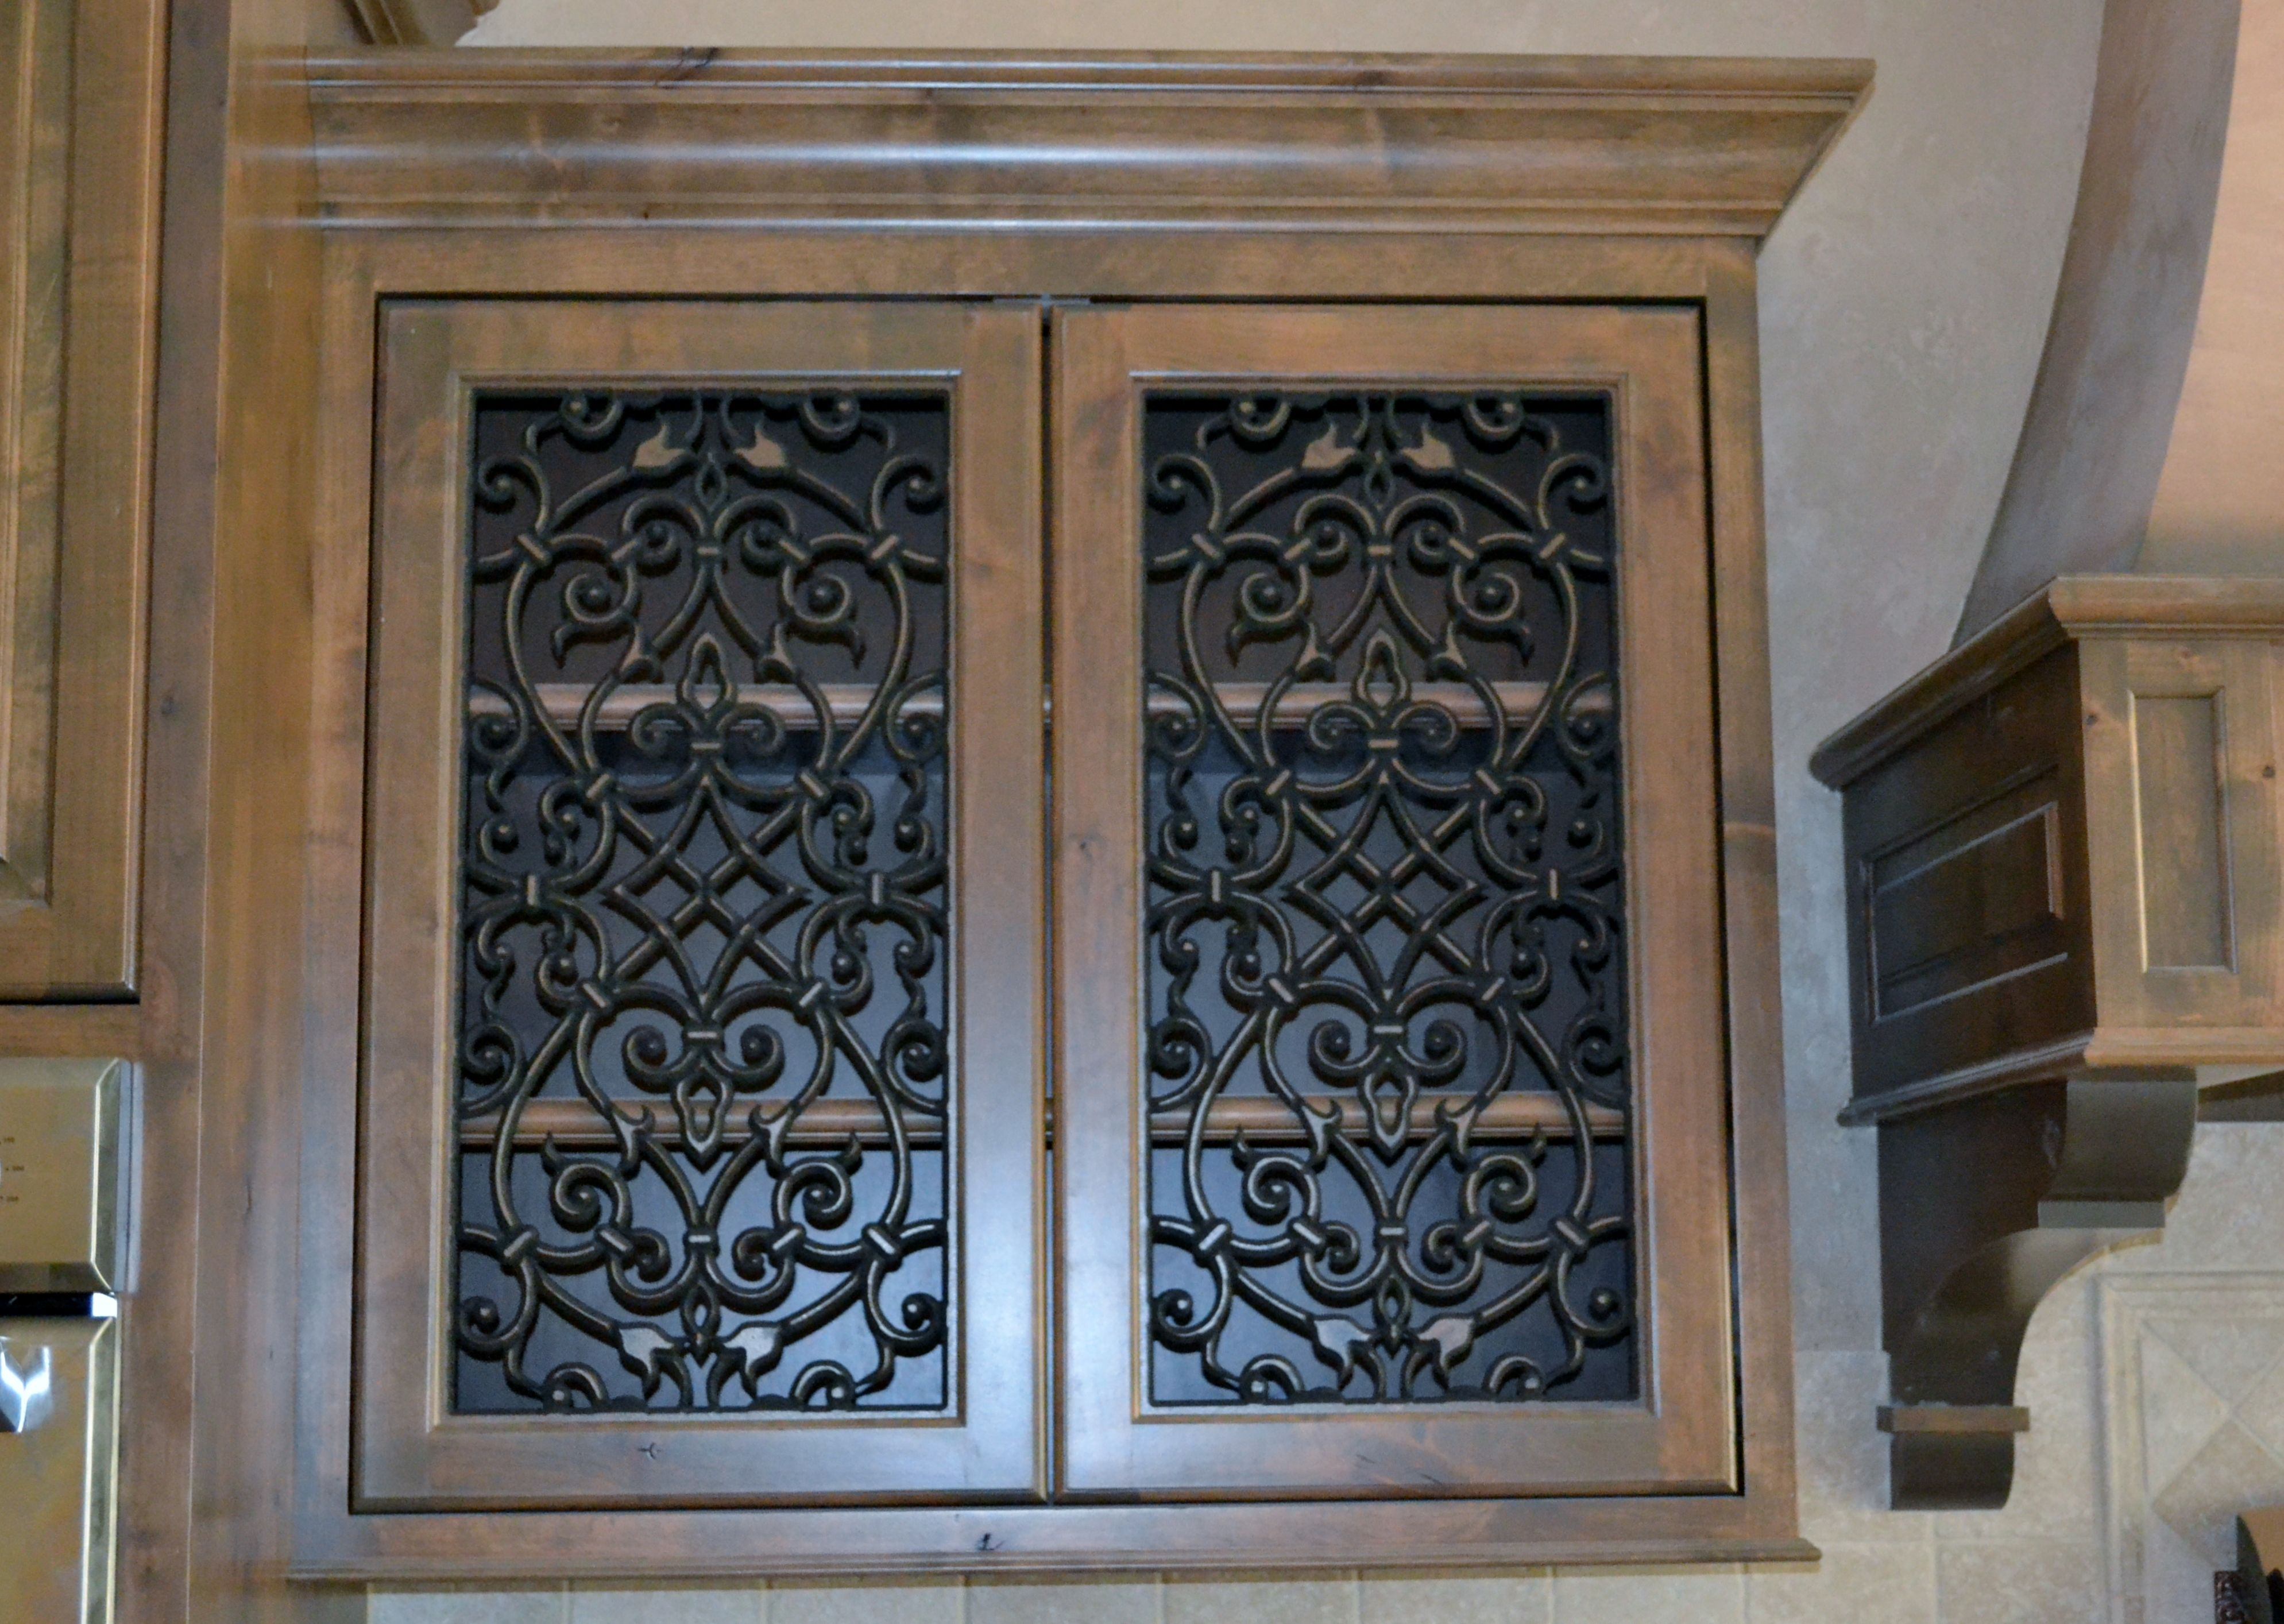 Faux Kitchen Cabinet Doors Kitchen Cabinet Doors With Faux Iron Inserts From Faux